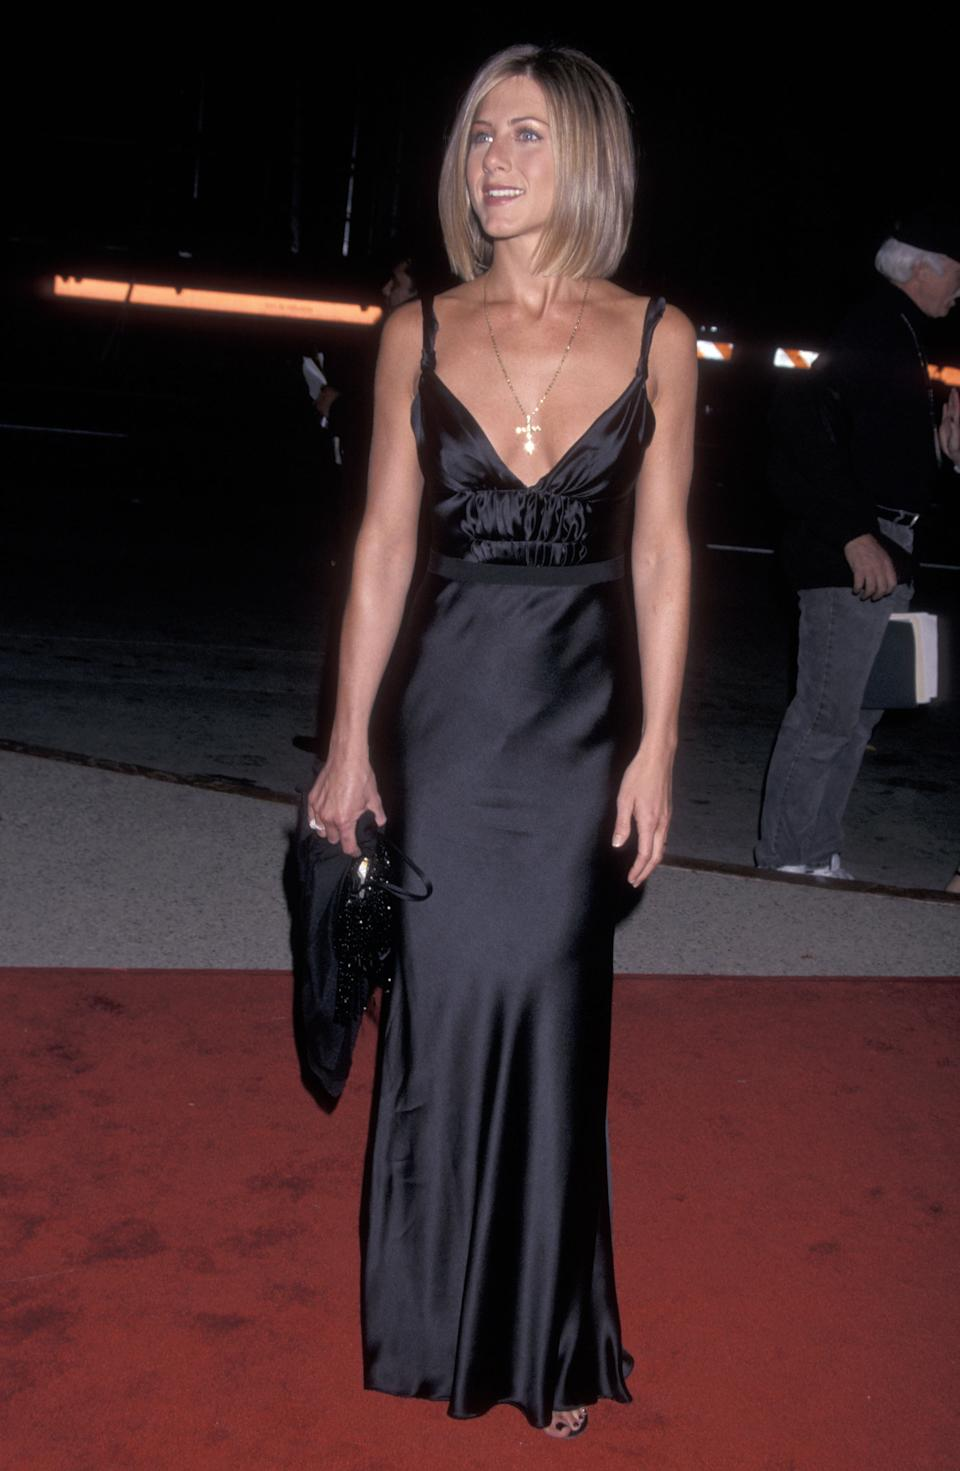 Although she's known for her long, honey-blonde hair, one of Aniston's best style moments came when she showed off her newly shorn locks in a black satin gown at the 27th People's Choice Awards. (photo by Ron Galella, Ltd./Wireimage)